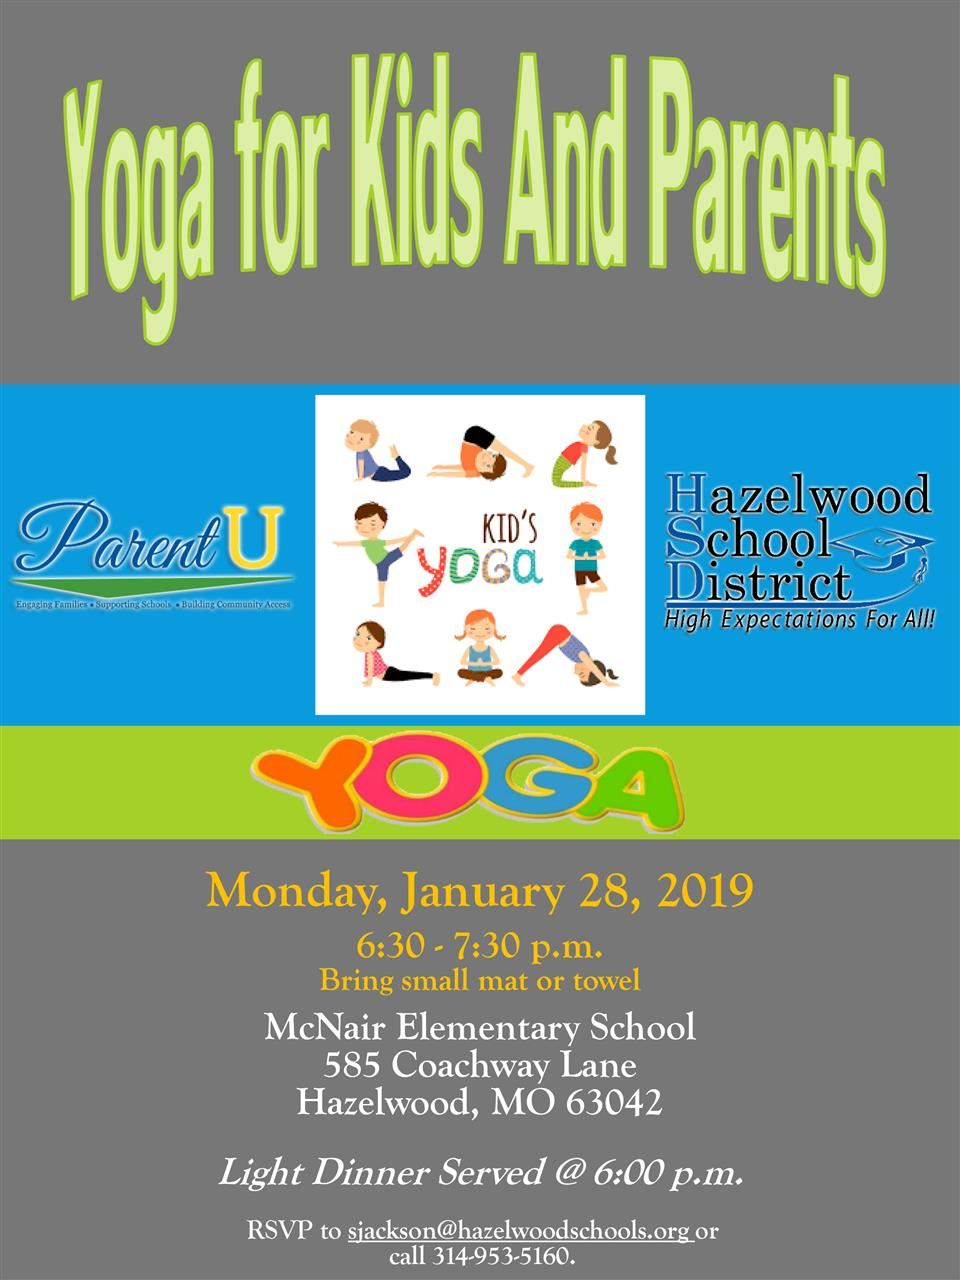 Yoga for Kids and Parents